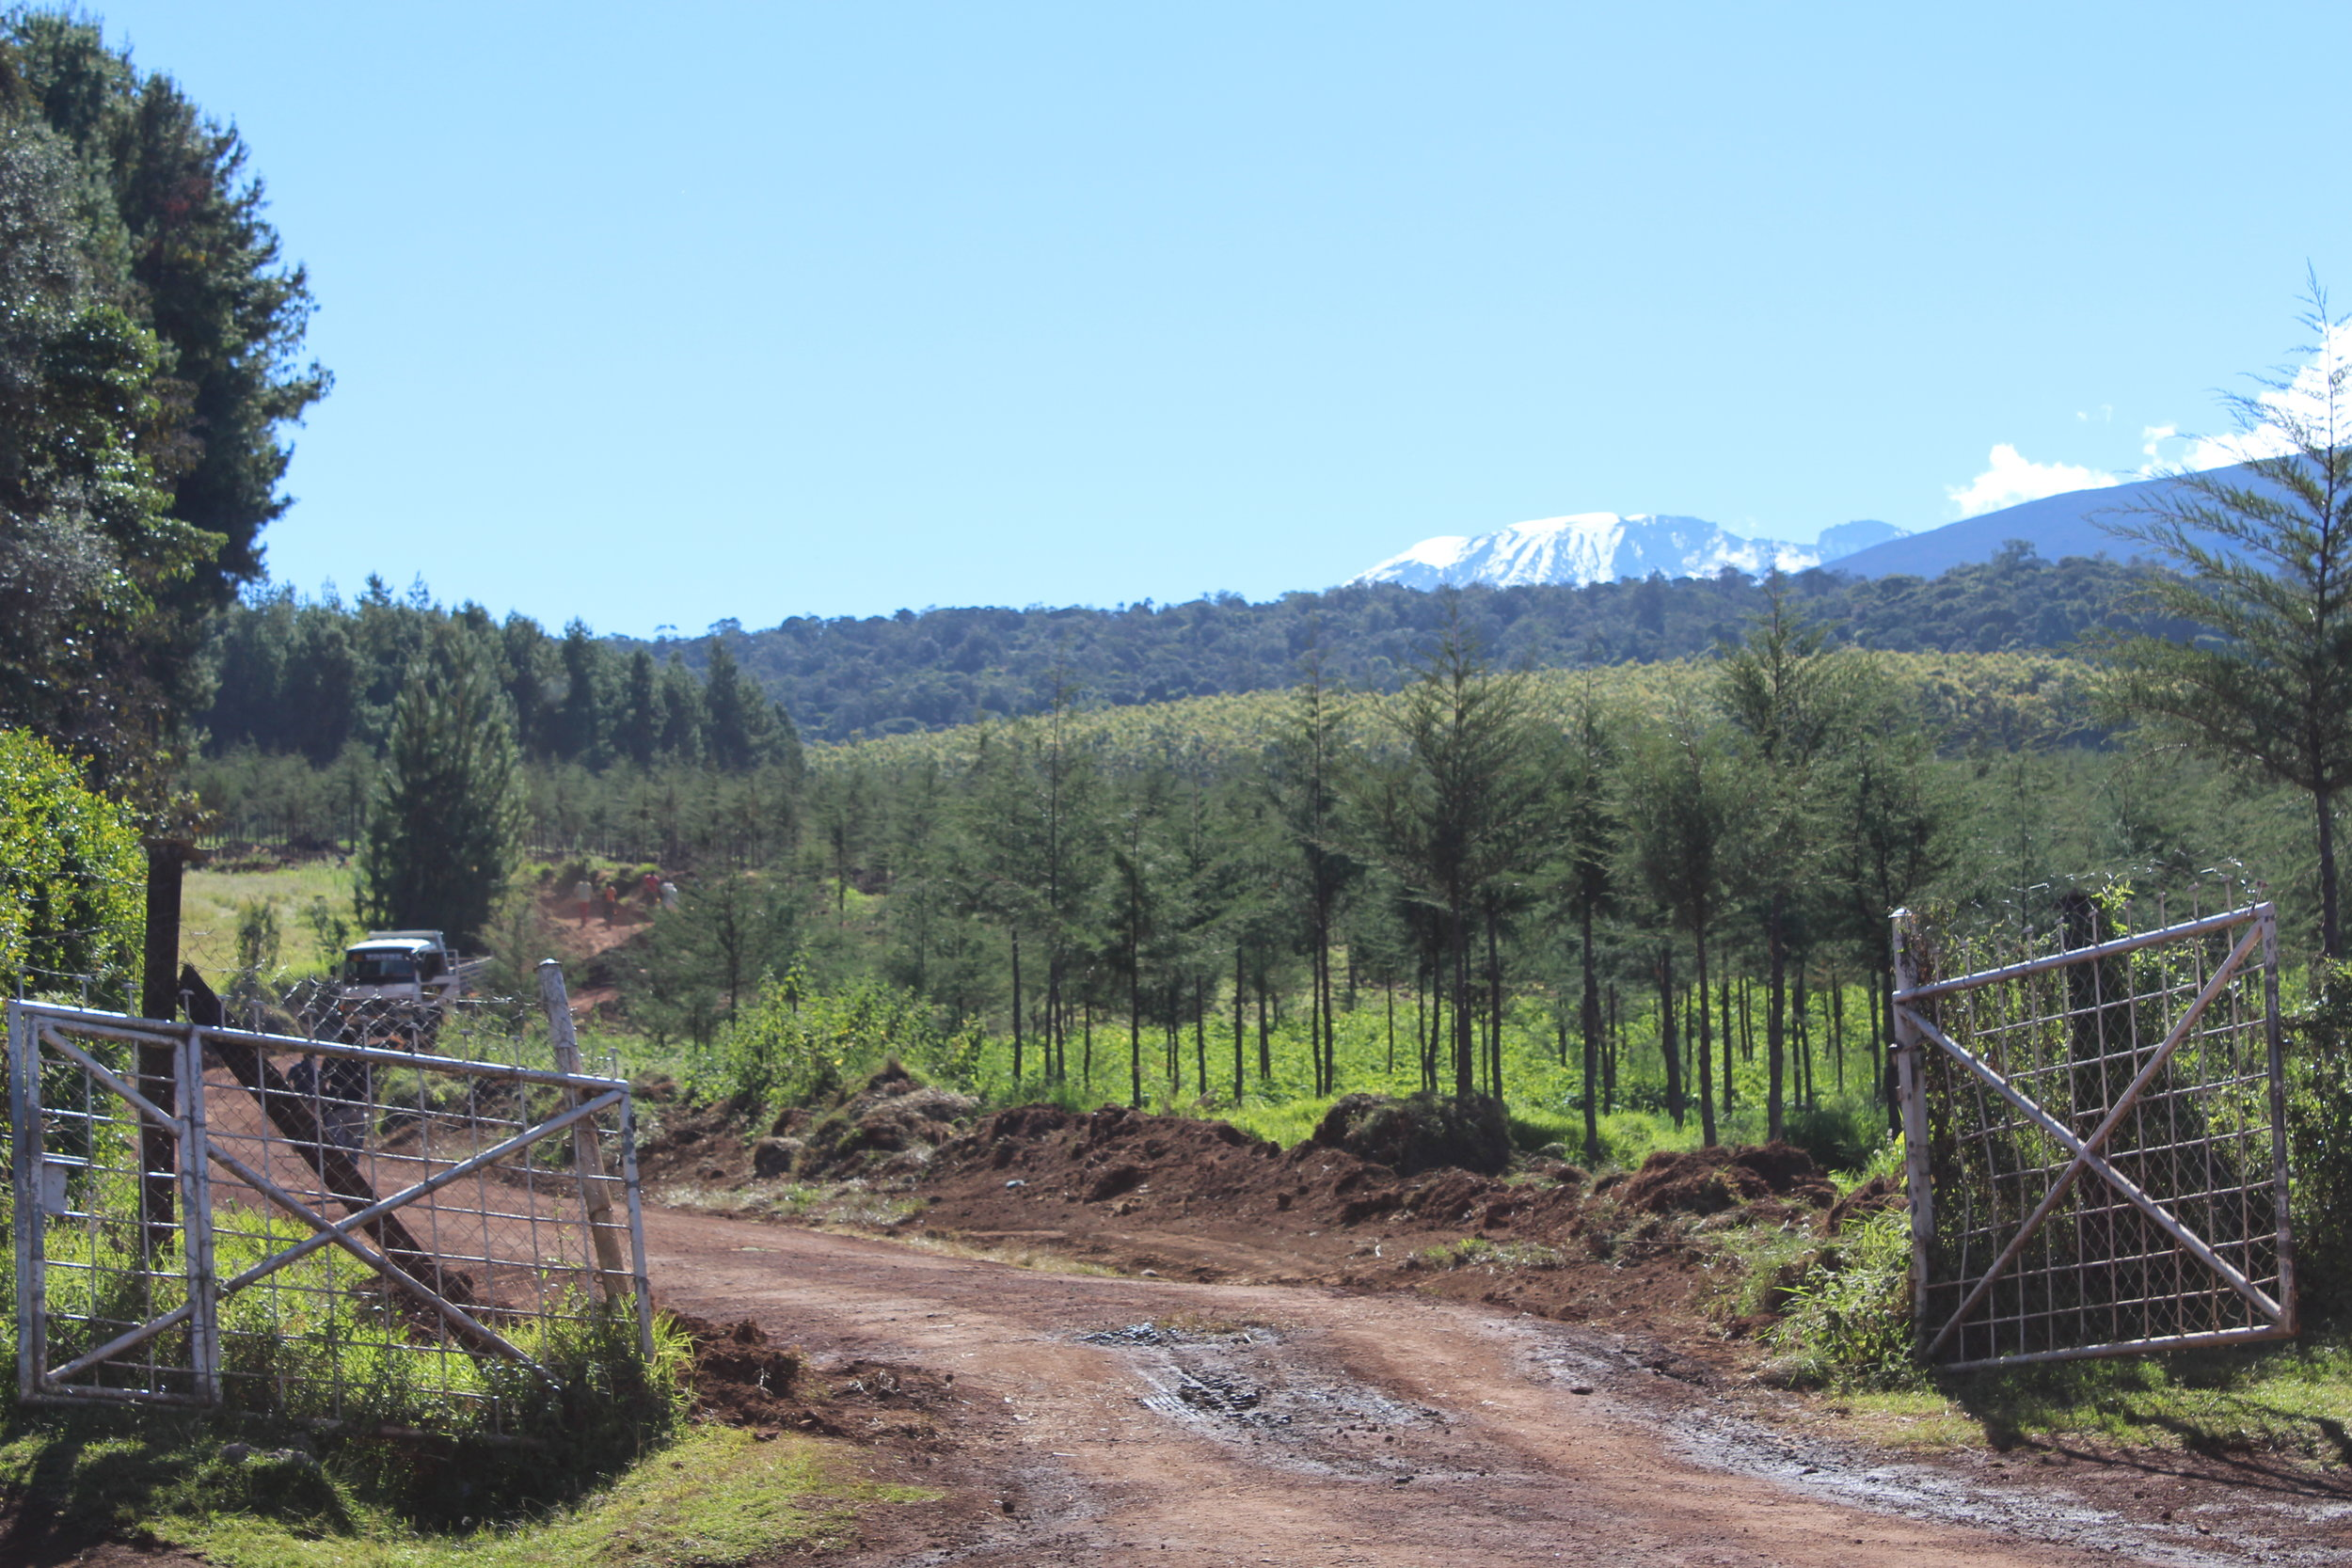 View of Kilimanjaro's summit from the Londorossi Gate.